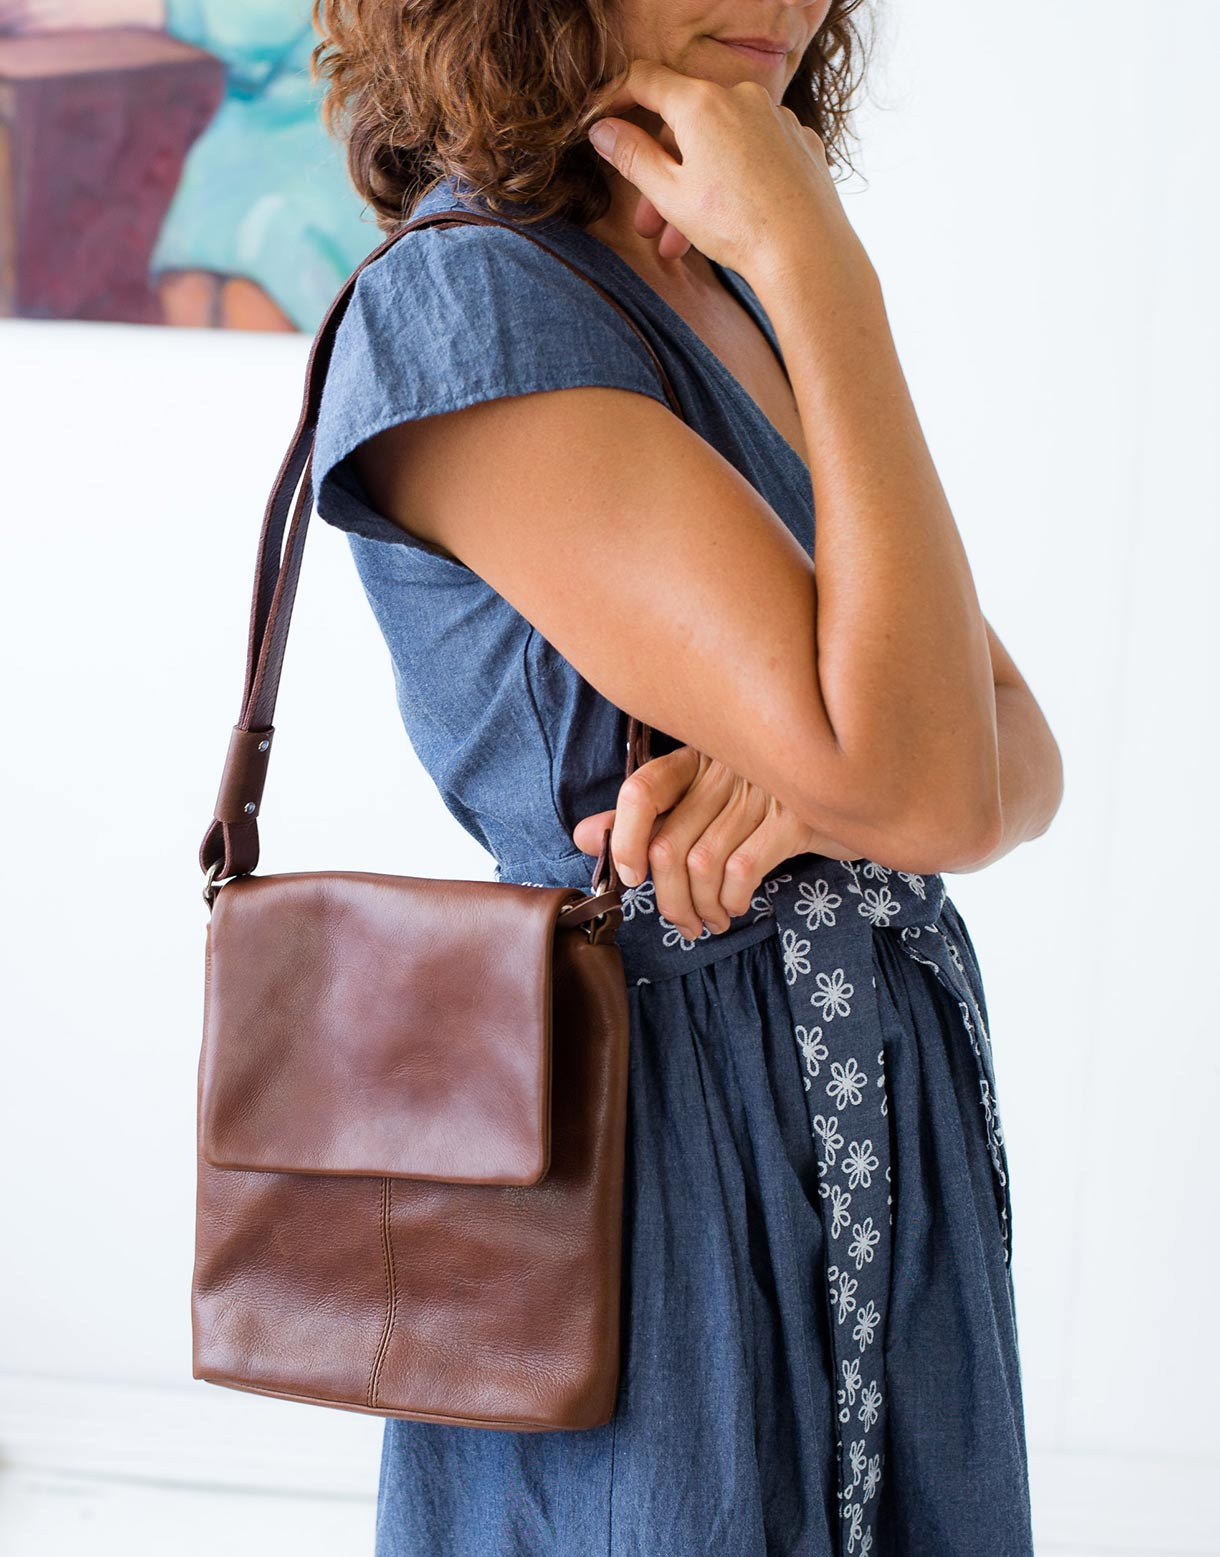 Kit Leather Bag in Brown